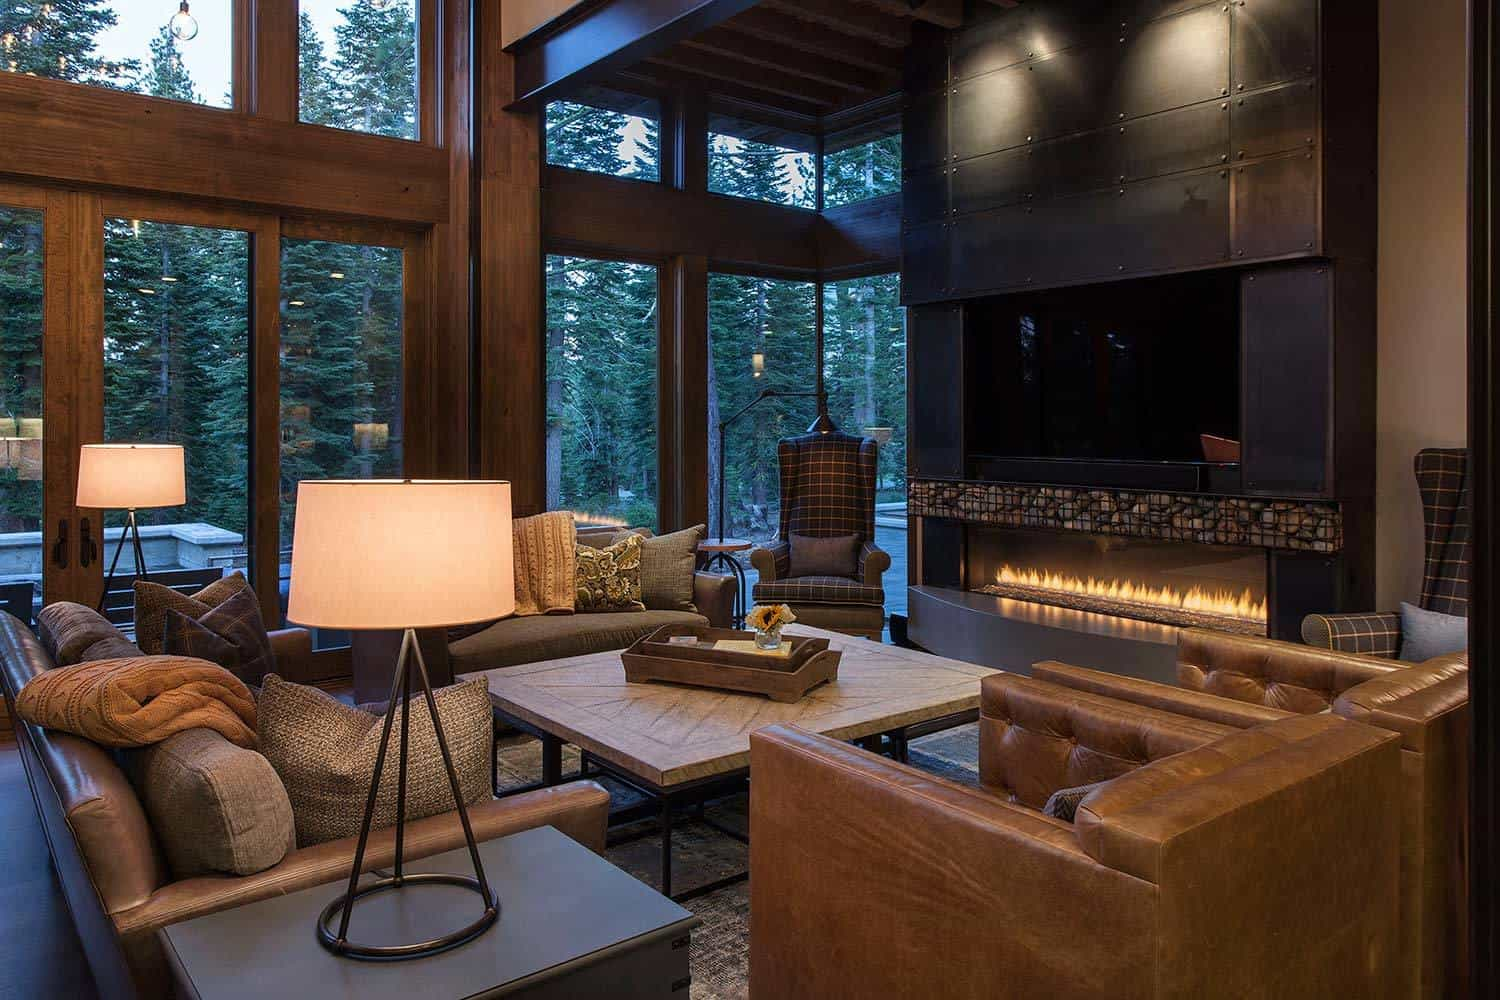 Lake tahoe getaway features contemporary barn aesthetic for Home decor interior design